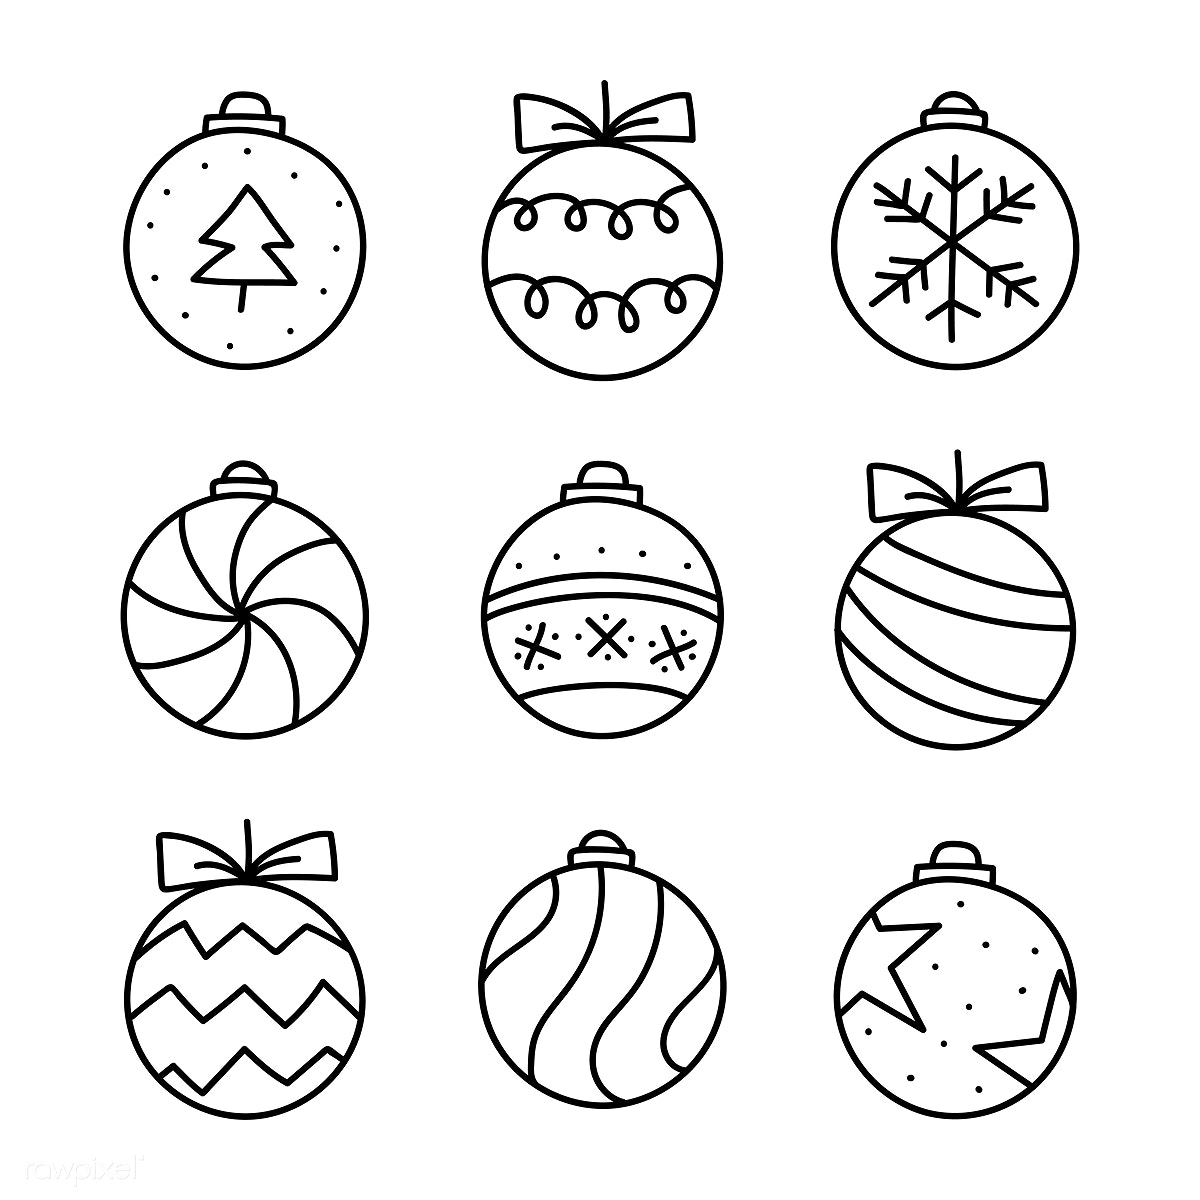 Drawings Of Christmas Ornaments.Download Premium Illustration Of Christmas Baubles Drawing Doodle Style